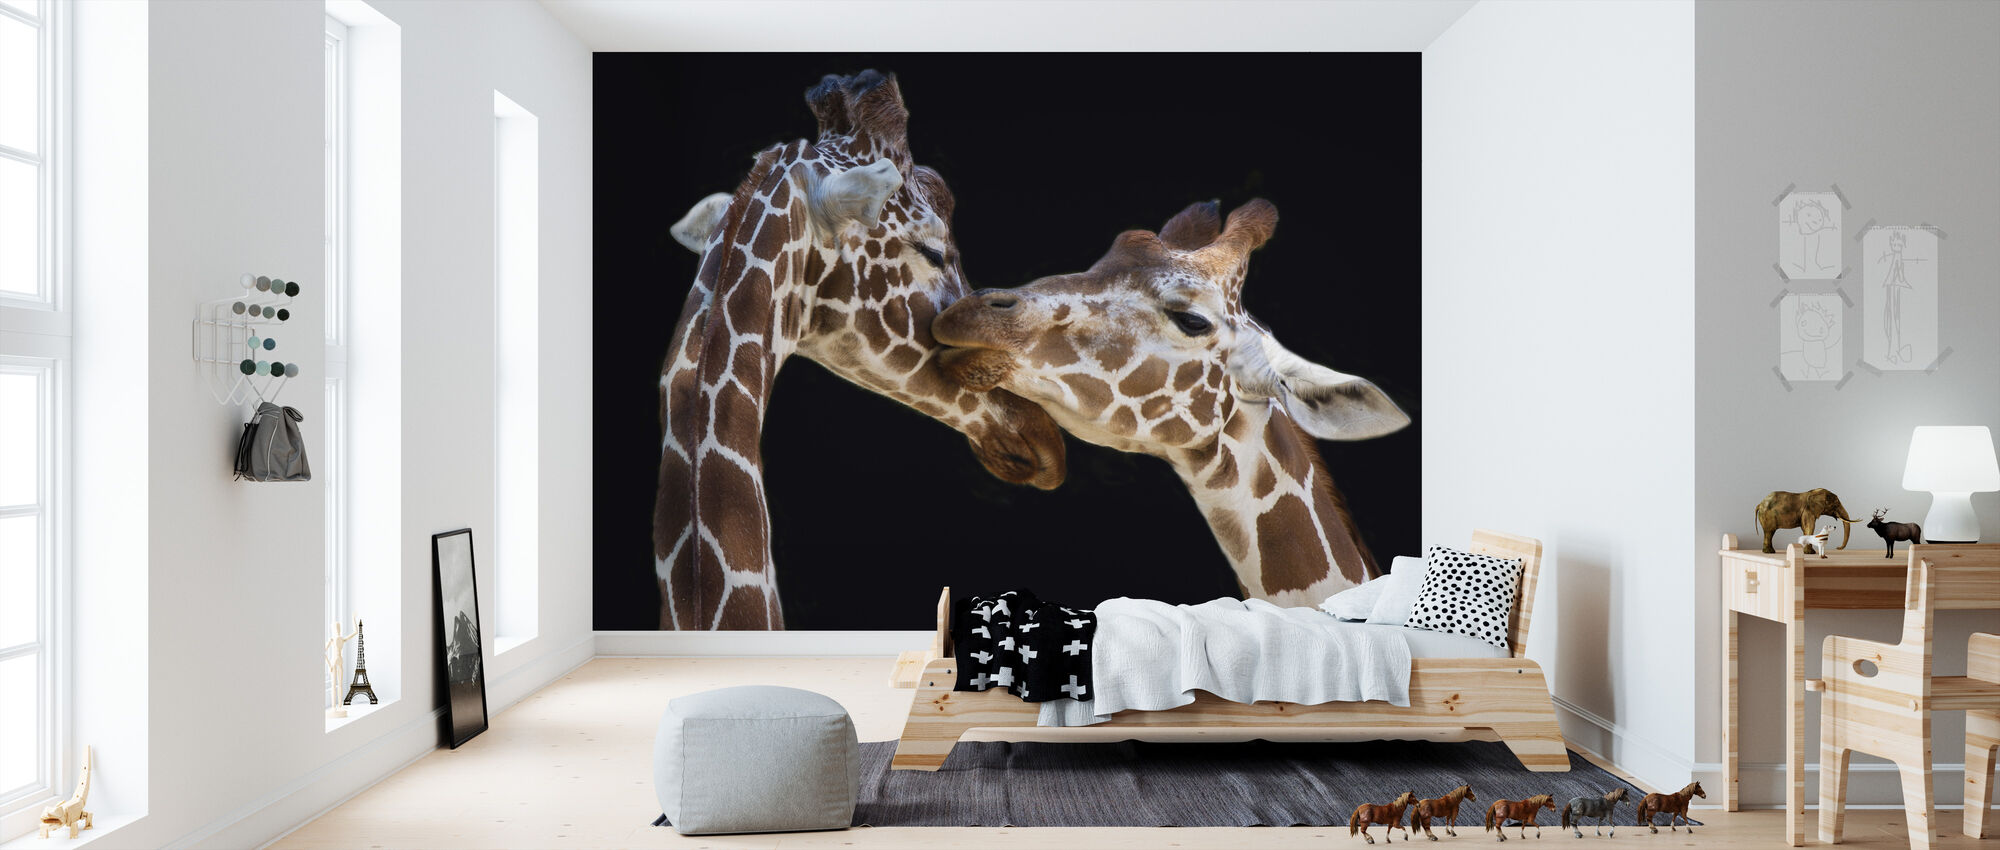 Giraffes Kissing - Wallpaper - Kids Room